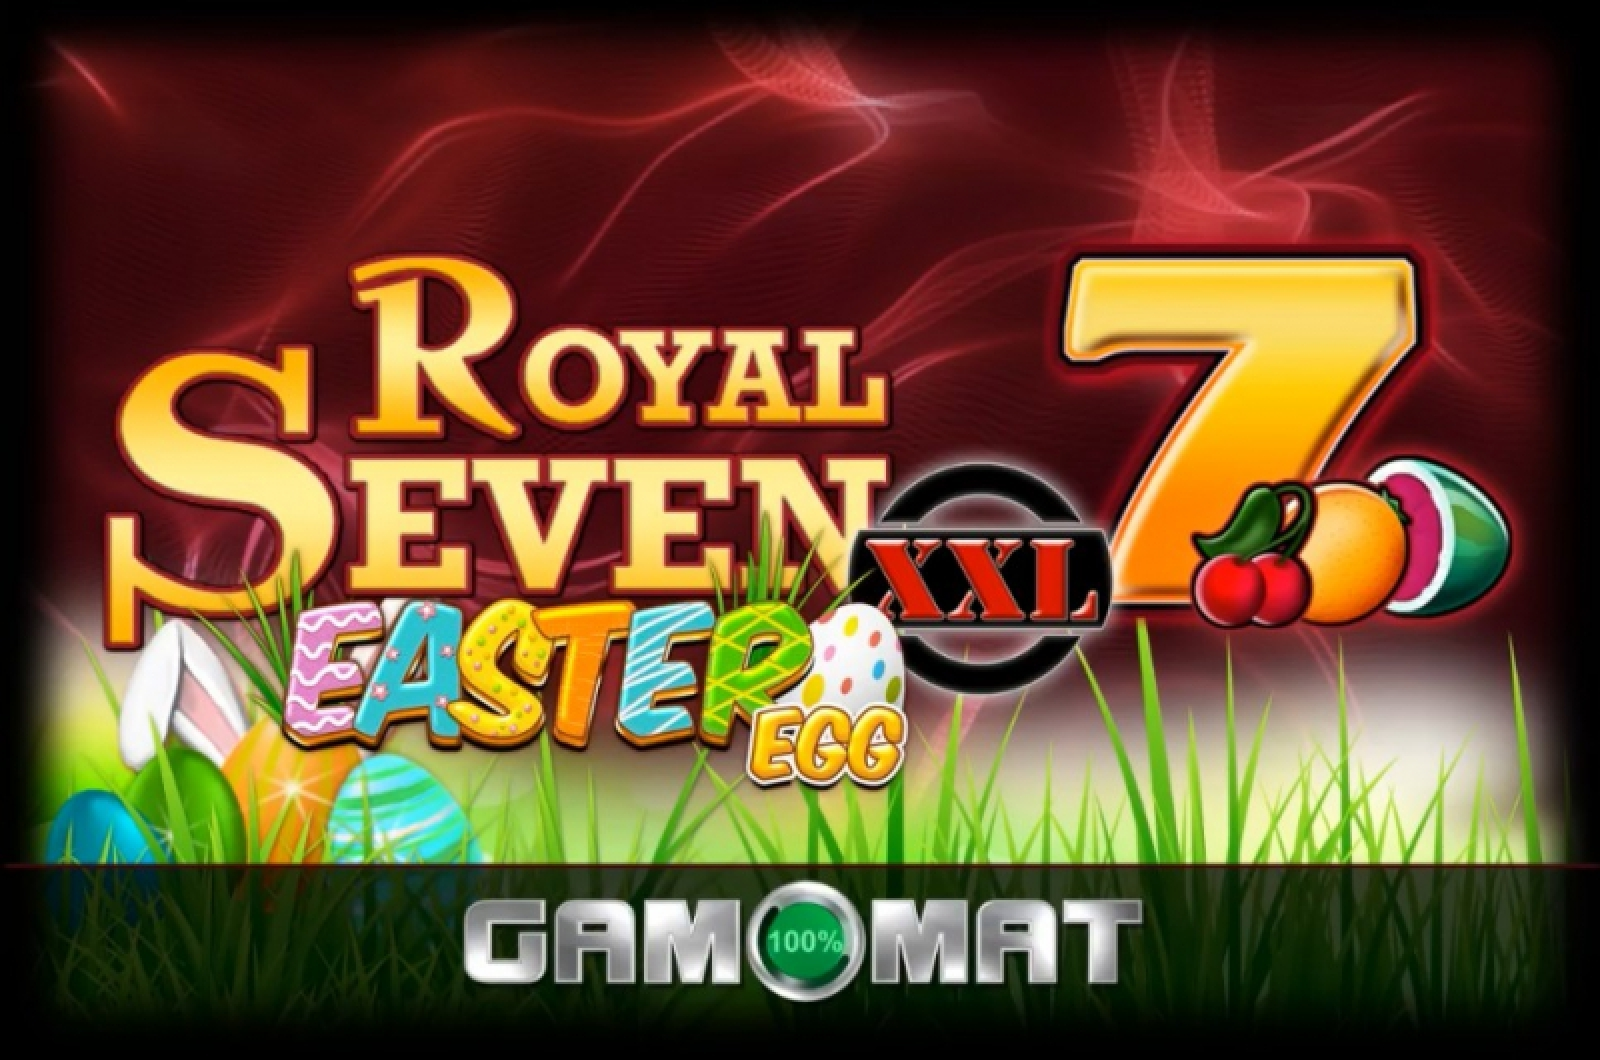 The Royal Seven XXL Easter Egg Online Slot Demo Game by Gamomat